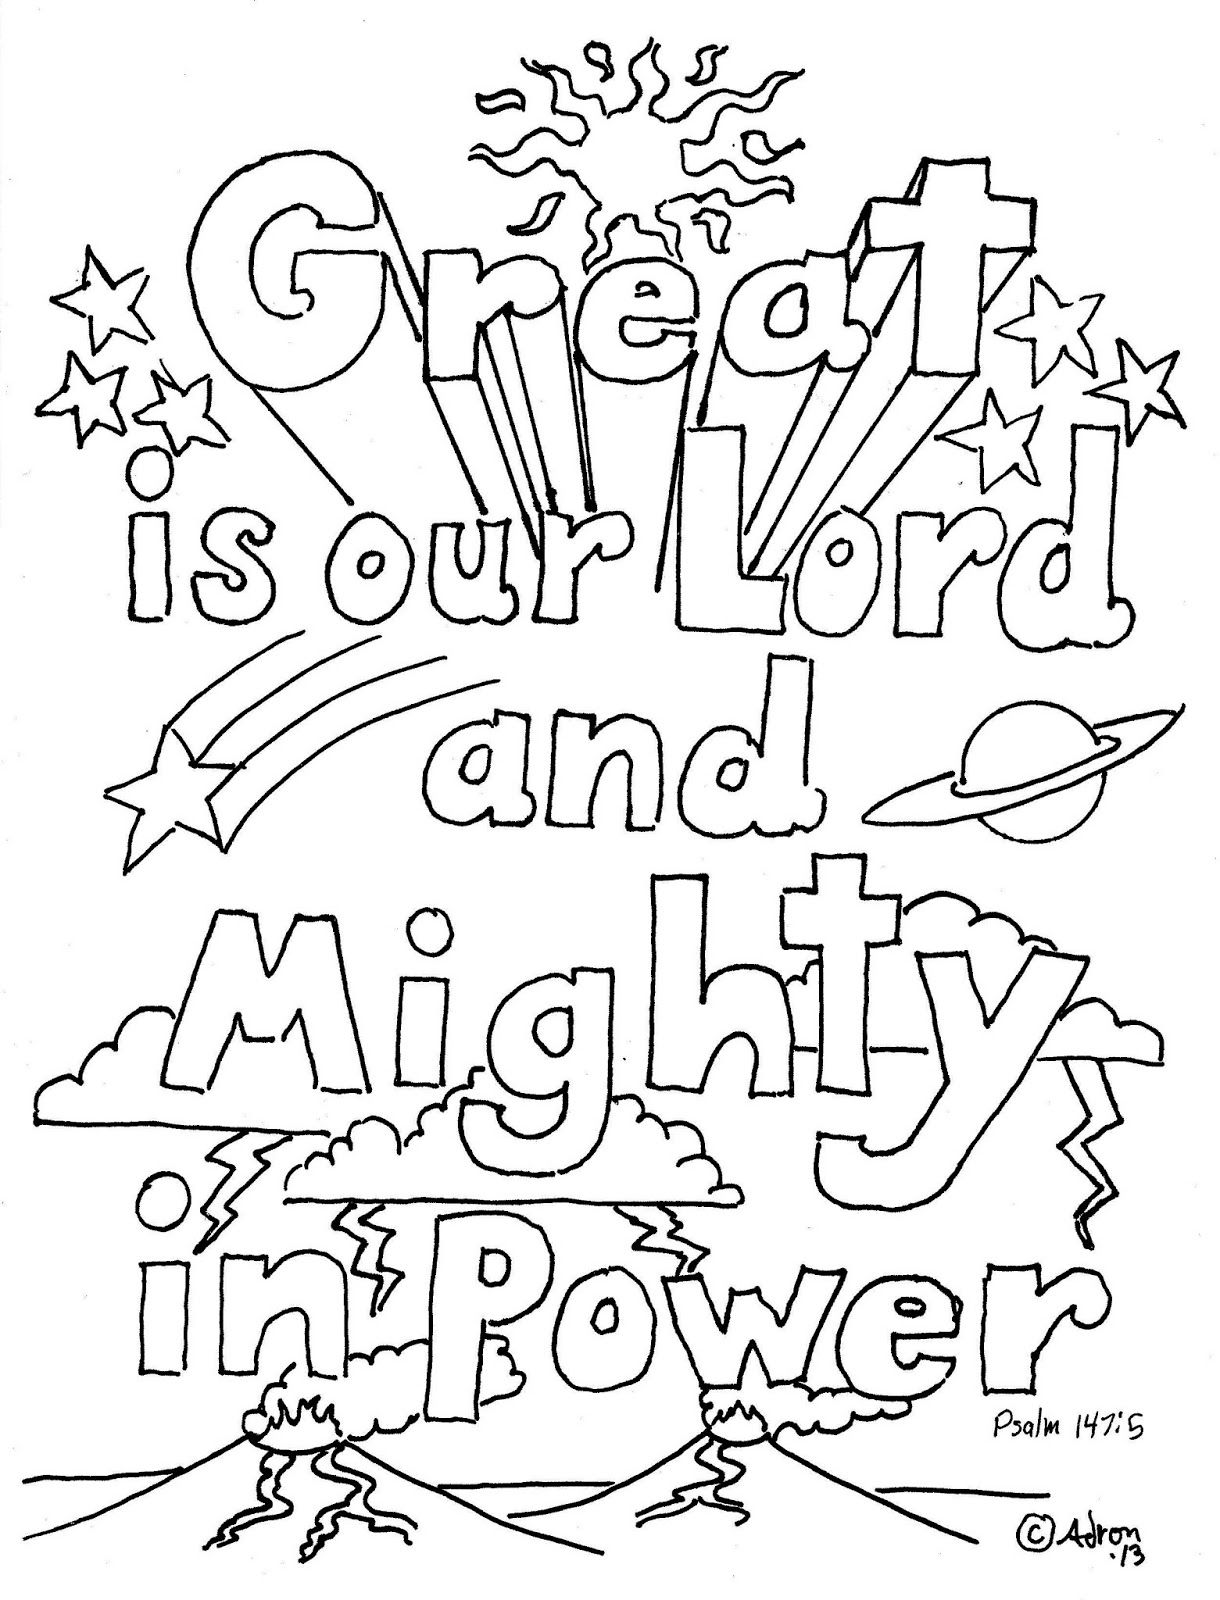 coloring psalm 1 23rd psalm coloring pages kidsuki psalm 1 coloring